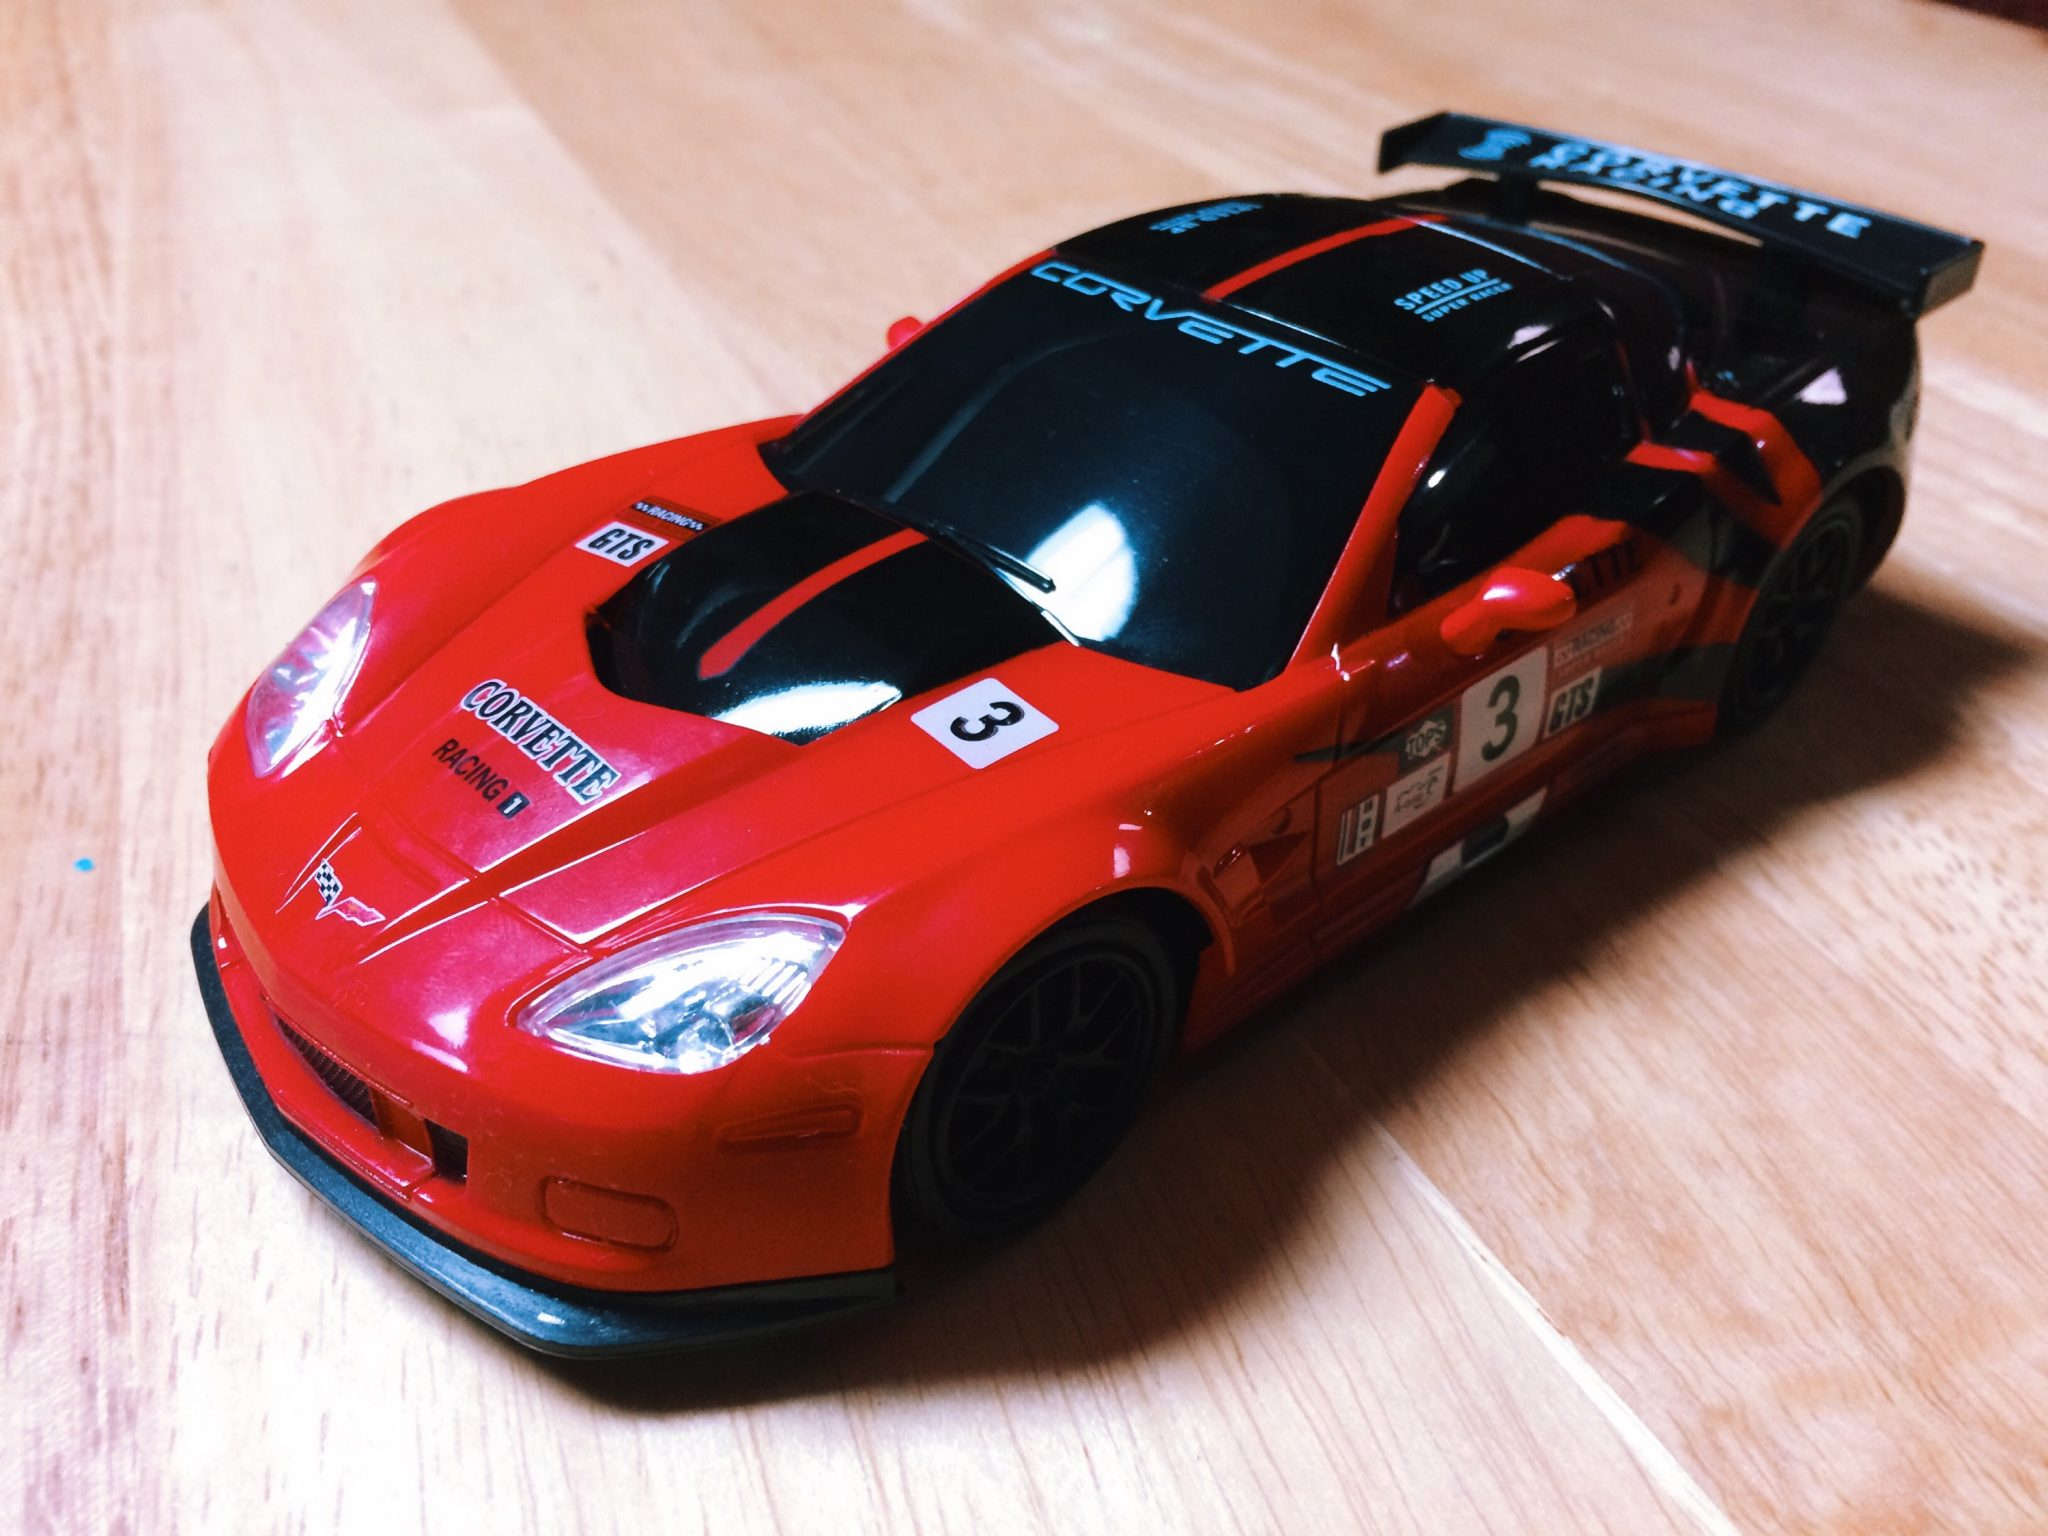 Unboxing: Lollipop Toys 1/24-scale Corvette CR6 [Video]